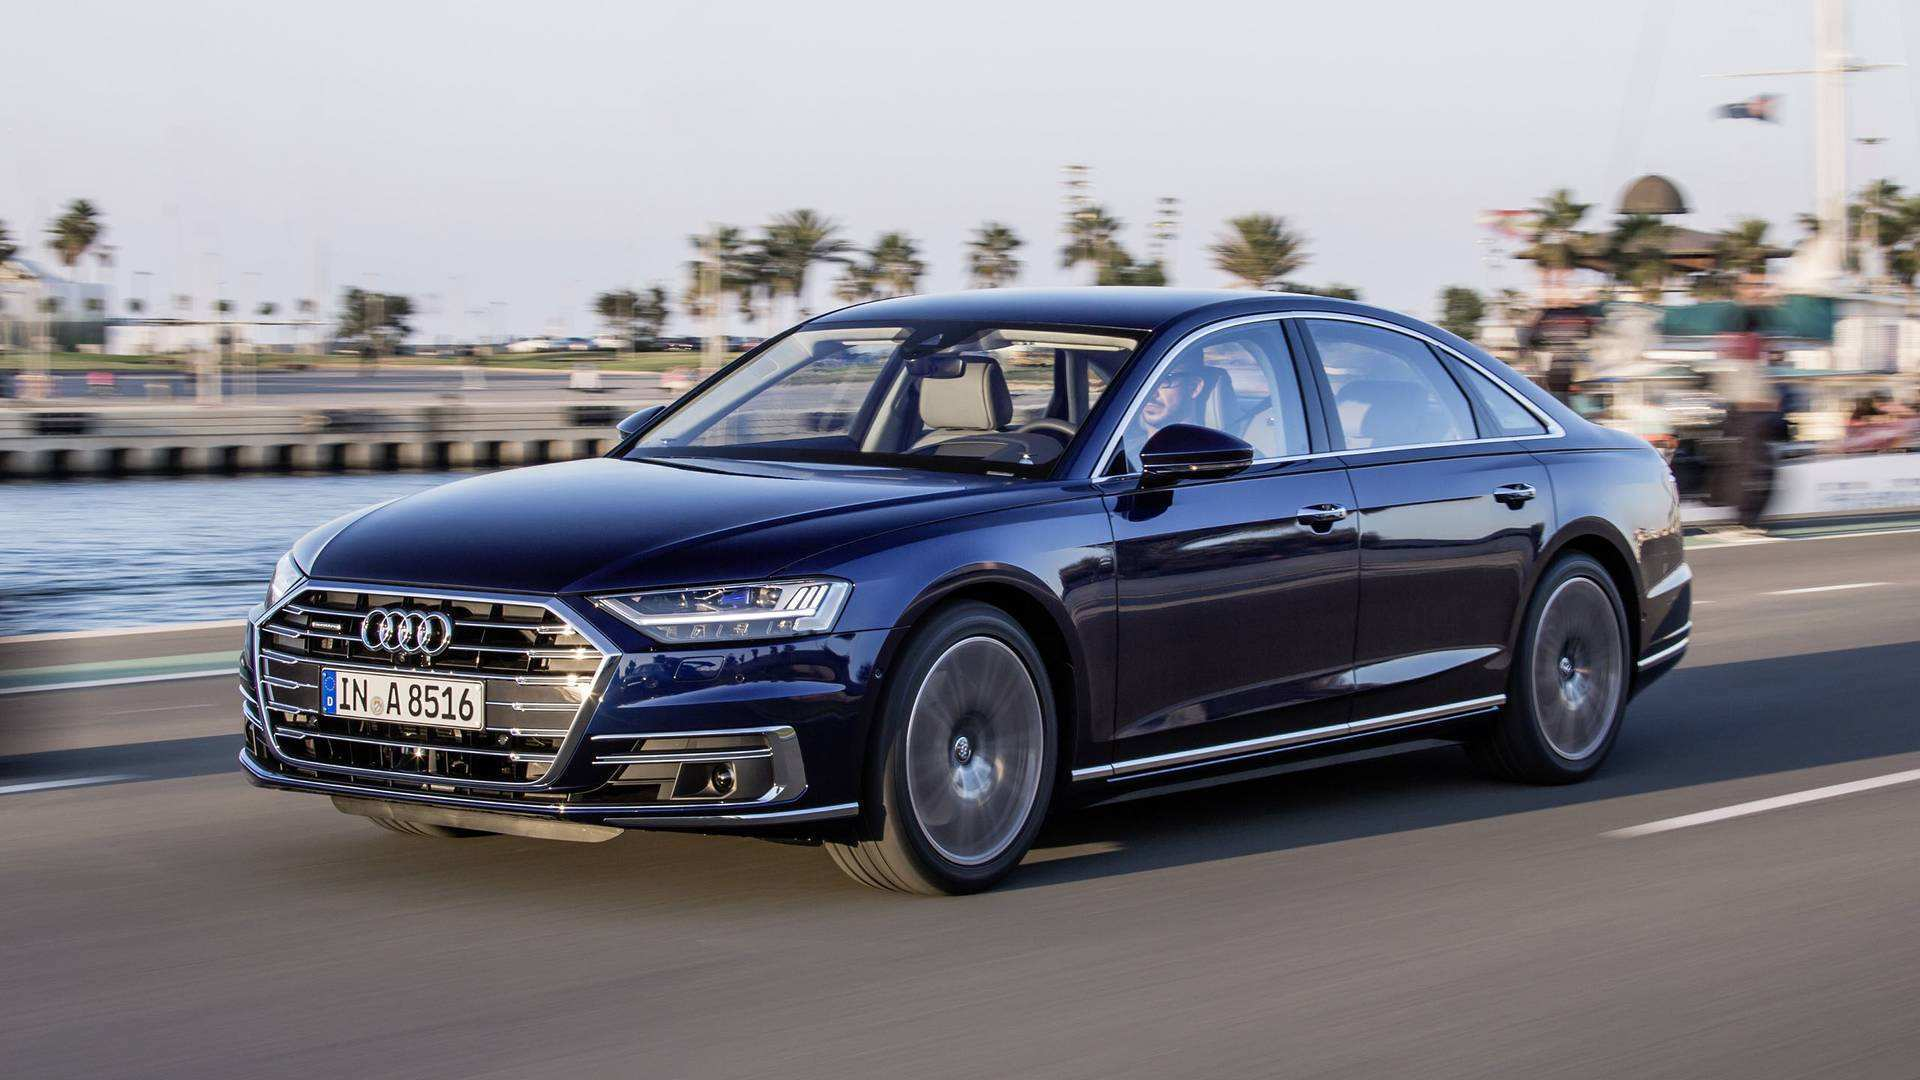 28 Gallery of 2019 Audi A8 Photos Redesign for 2019 Audi A8 Photos